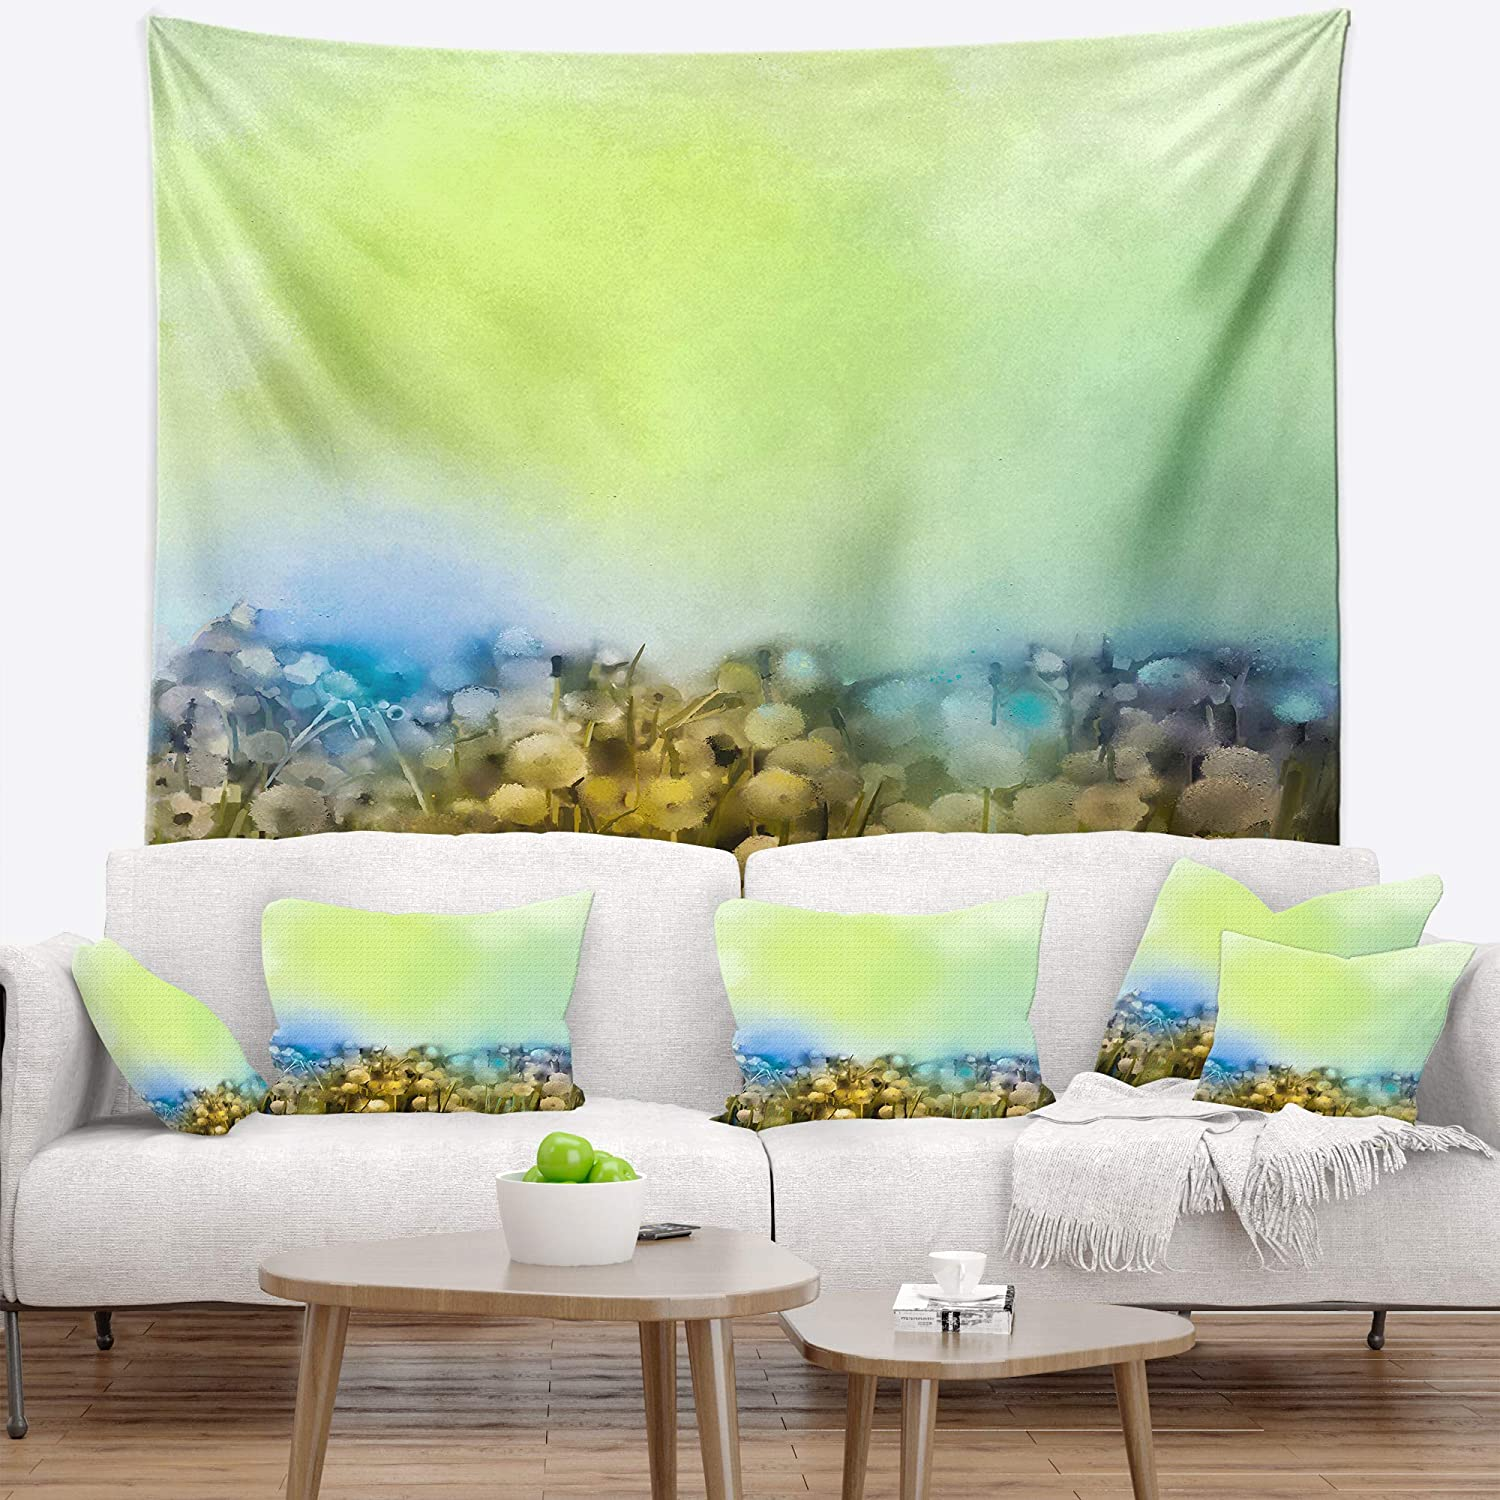 x 80 in in 68 in Designart TAP14082-68-80  White Flowers Garden in Soft Color Floral Blanket D/écor Art for Home and Office Wall Tapestry XX-Large